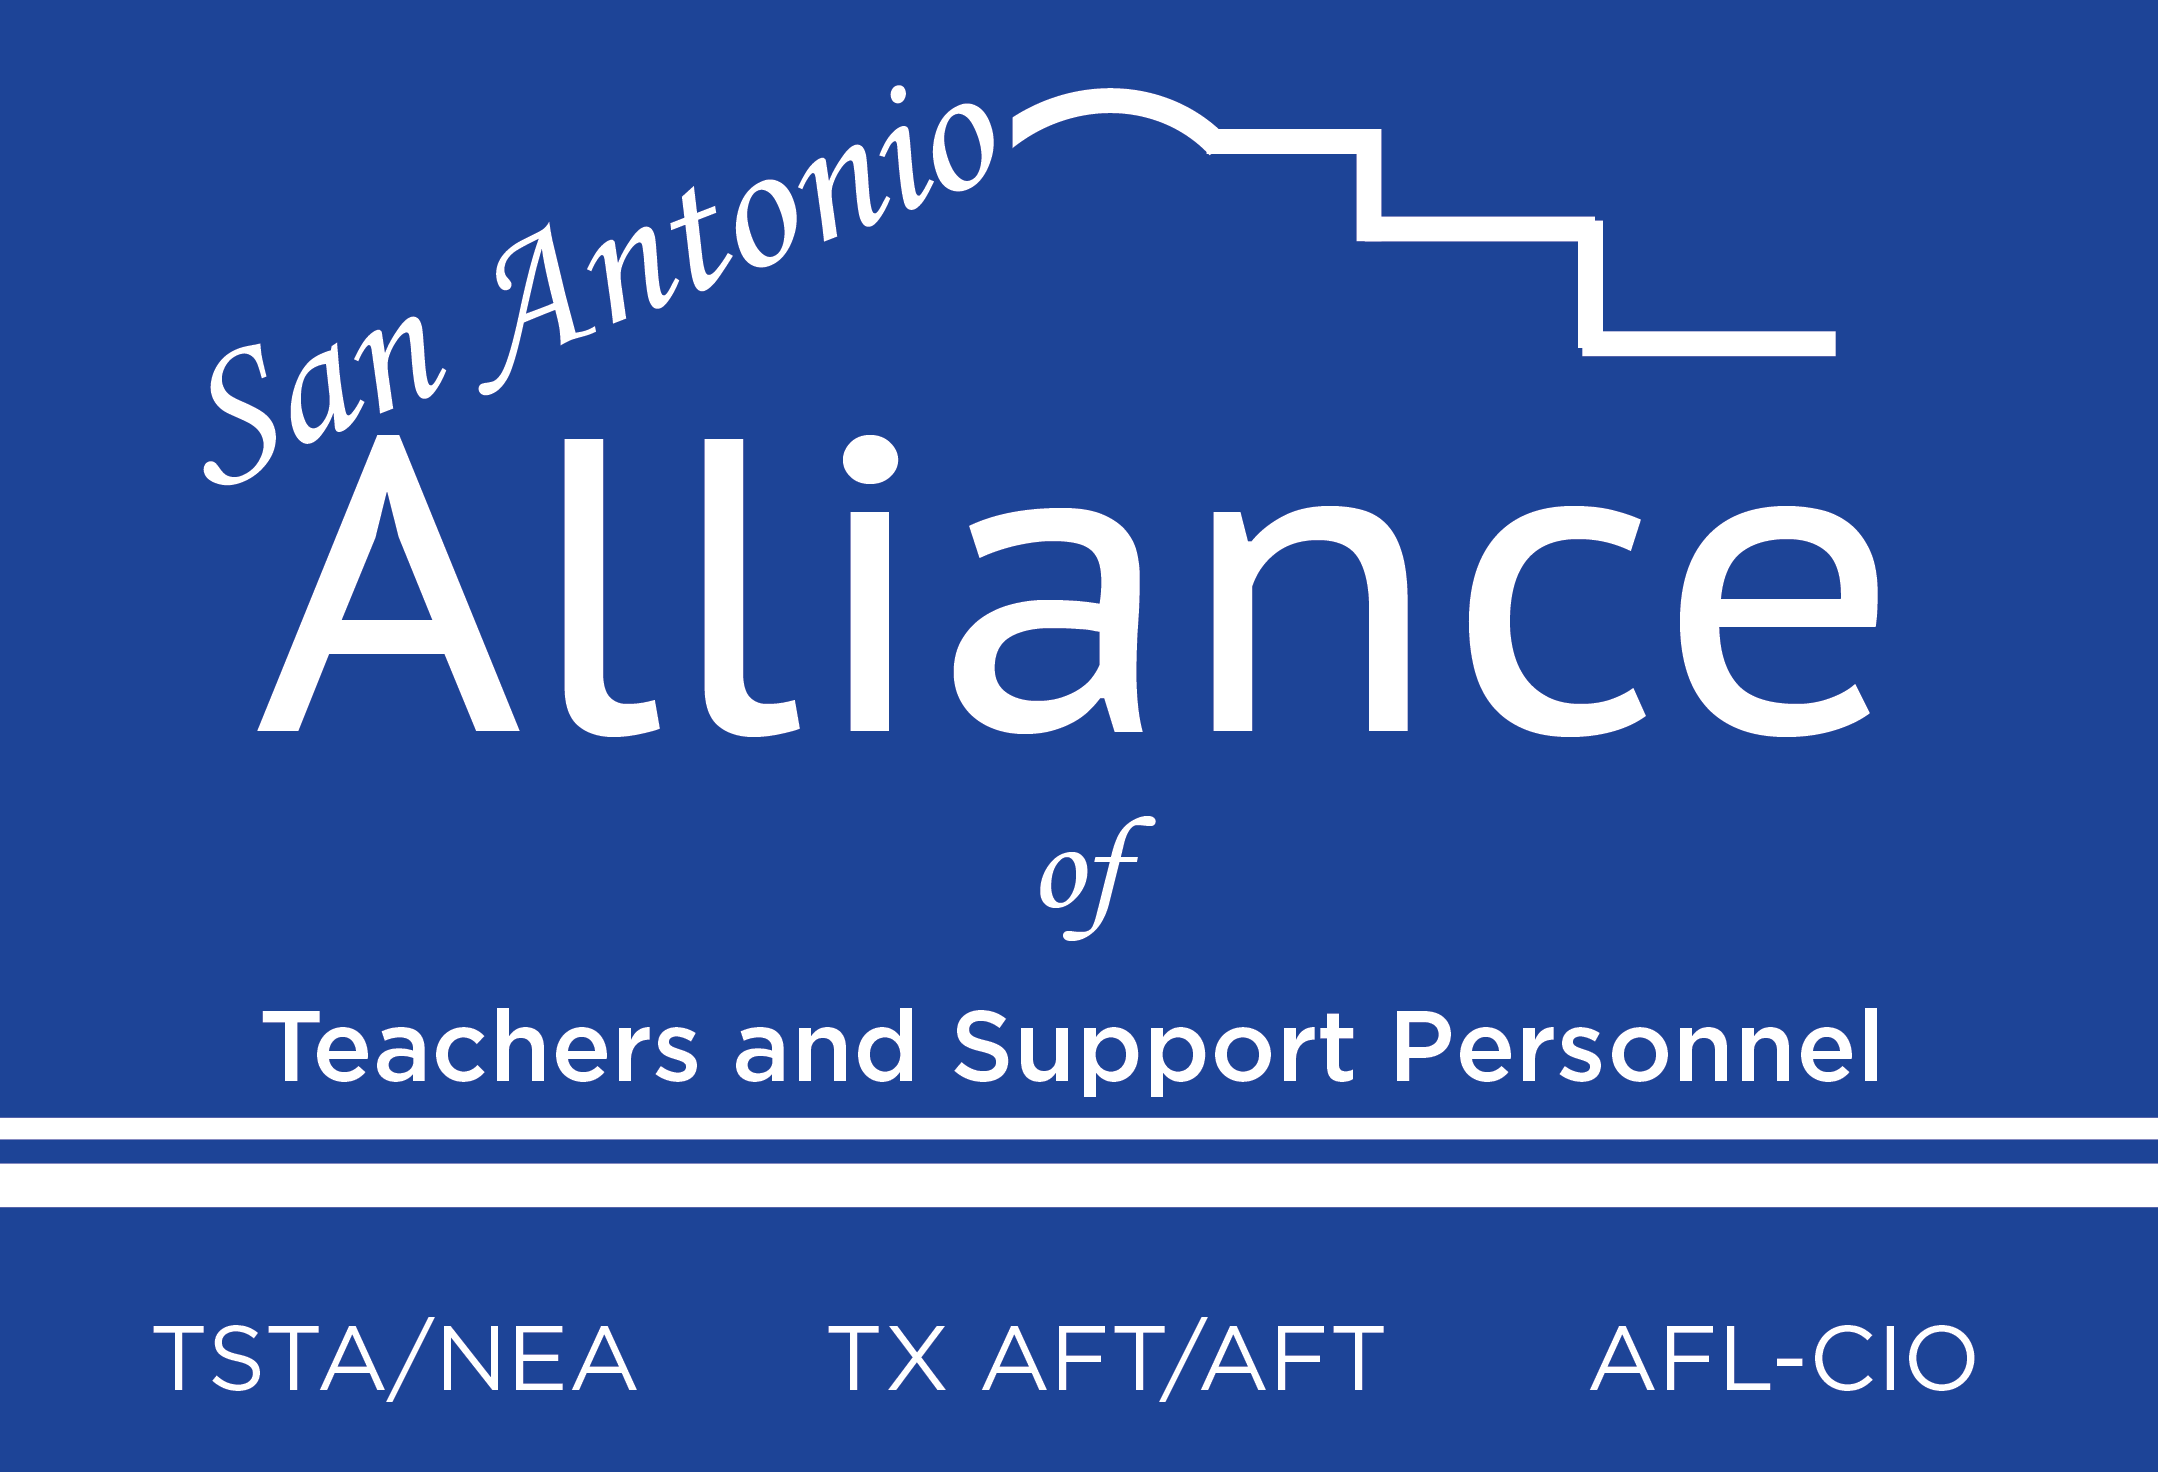 San Antonio Alliance of Teachers and Support Personnel logo